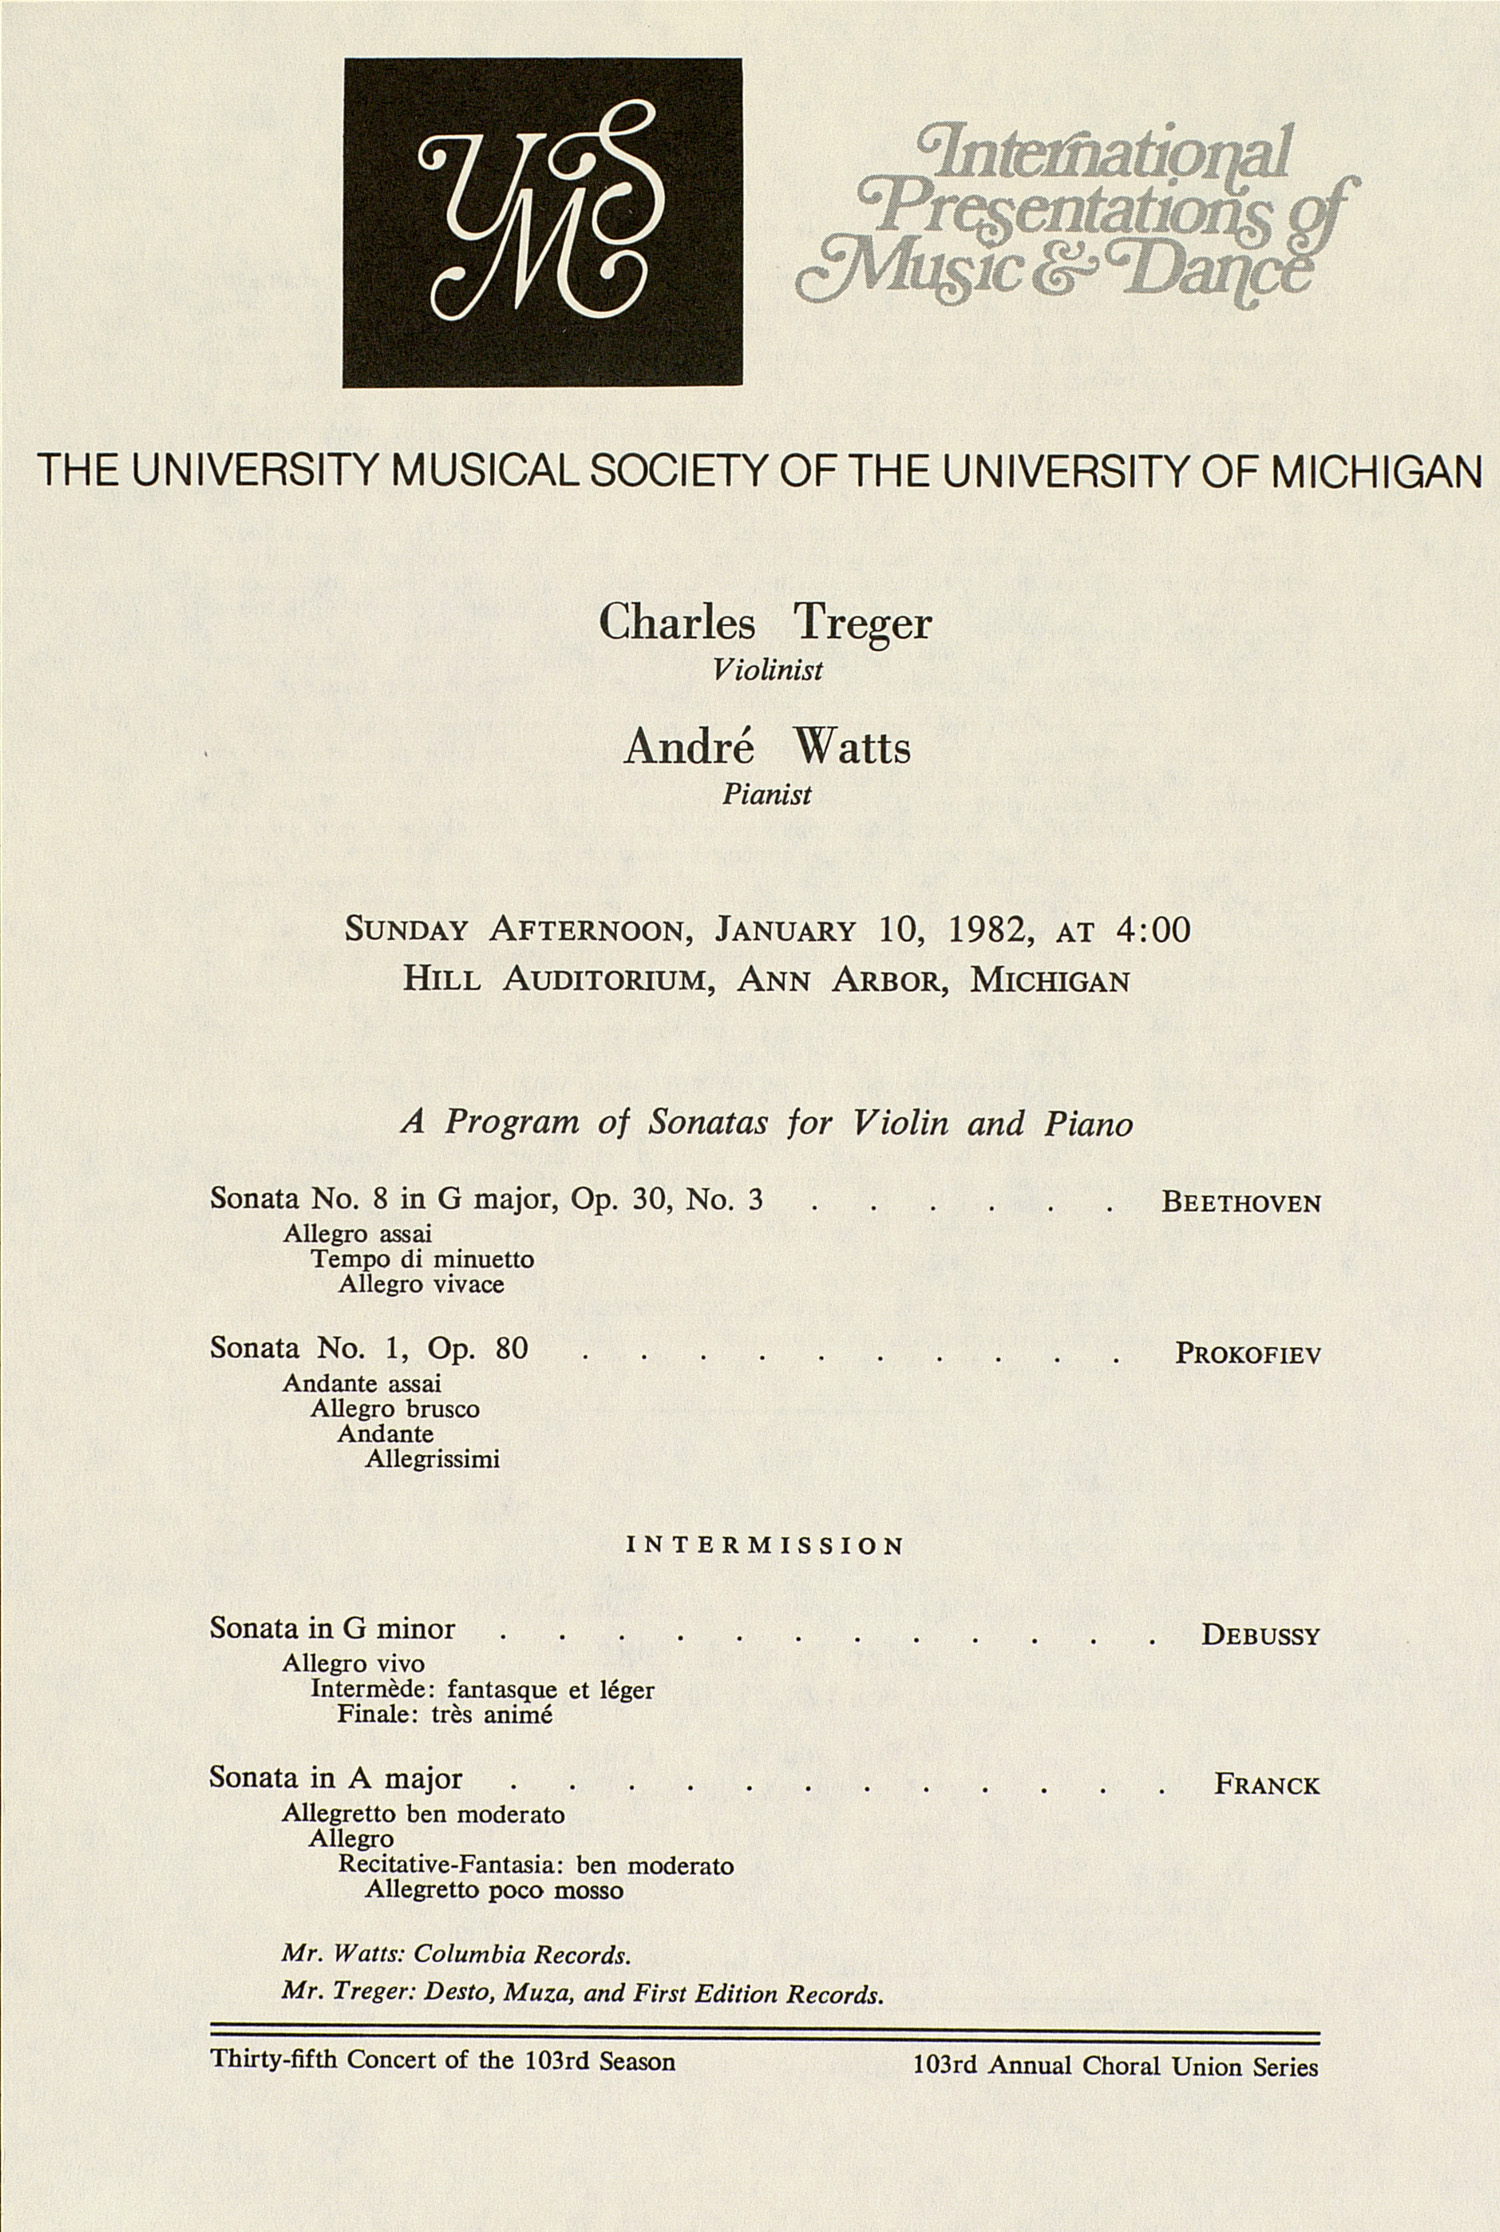 UMS Concert Program, January 10, 1982: International Presentations Of Music & Dance --  image